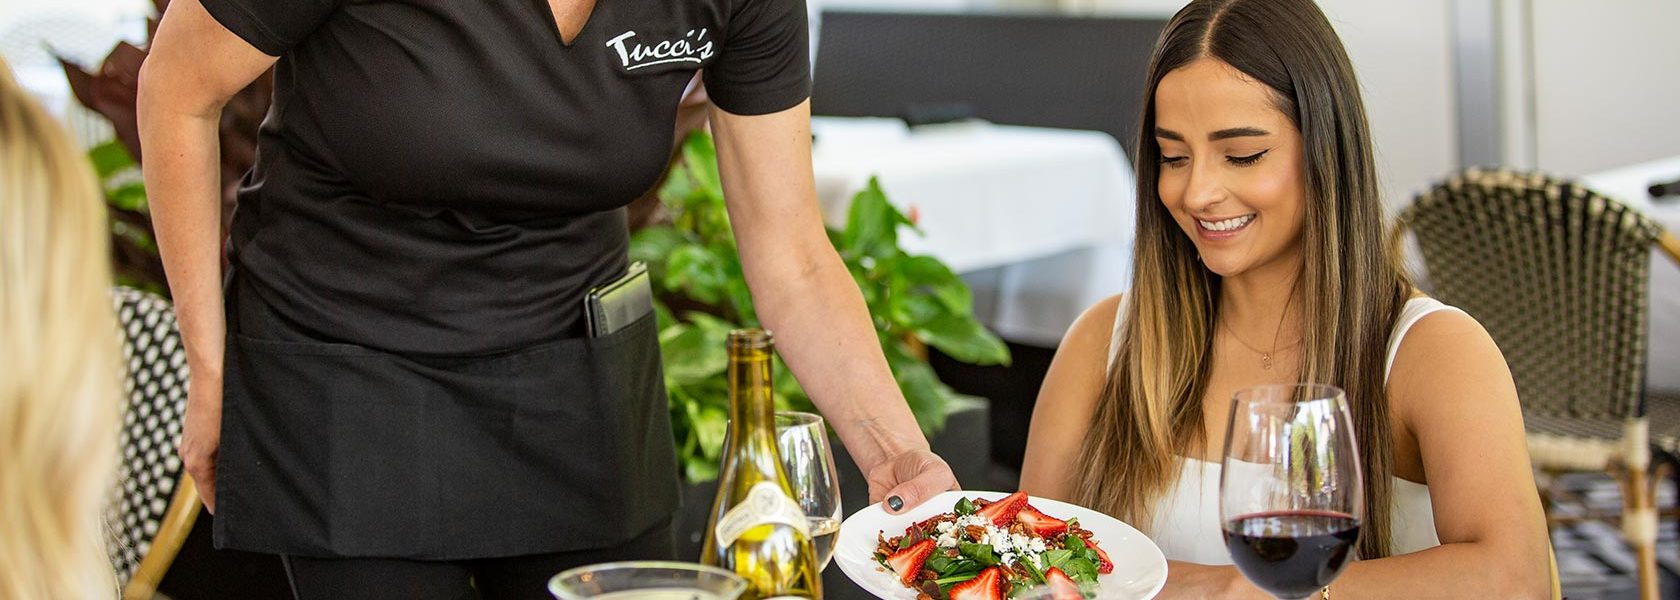 Woman being served a salad in light outdoor seating area.